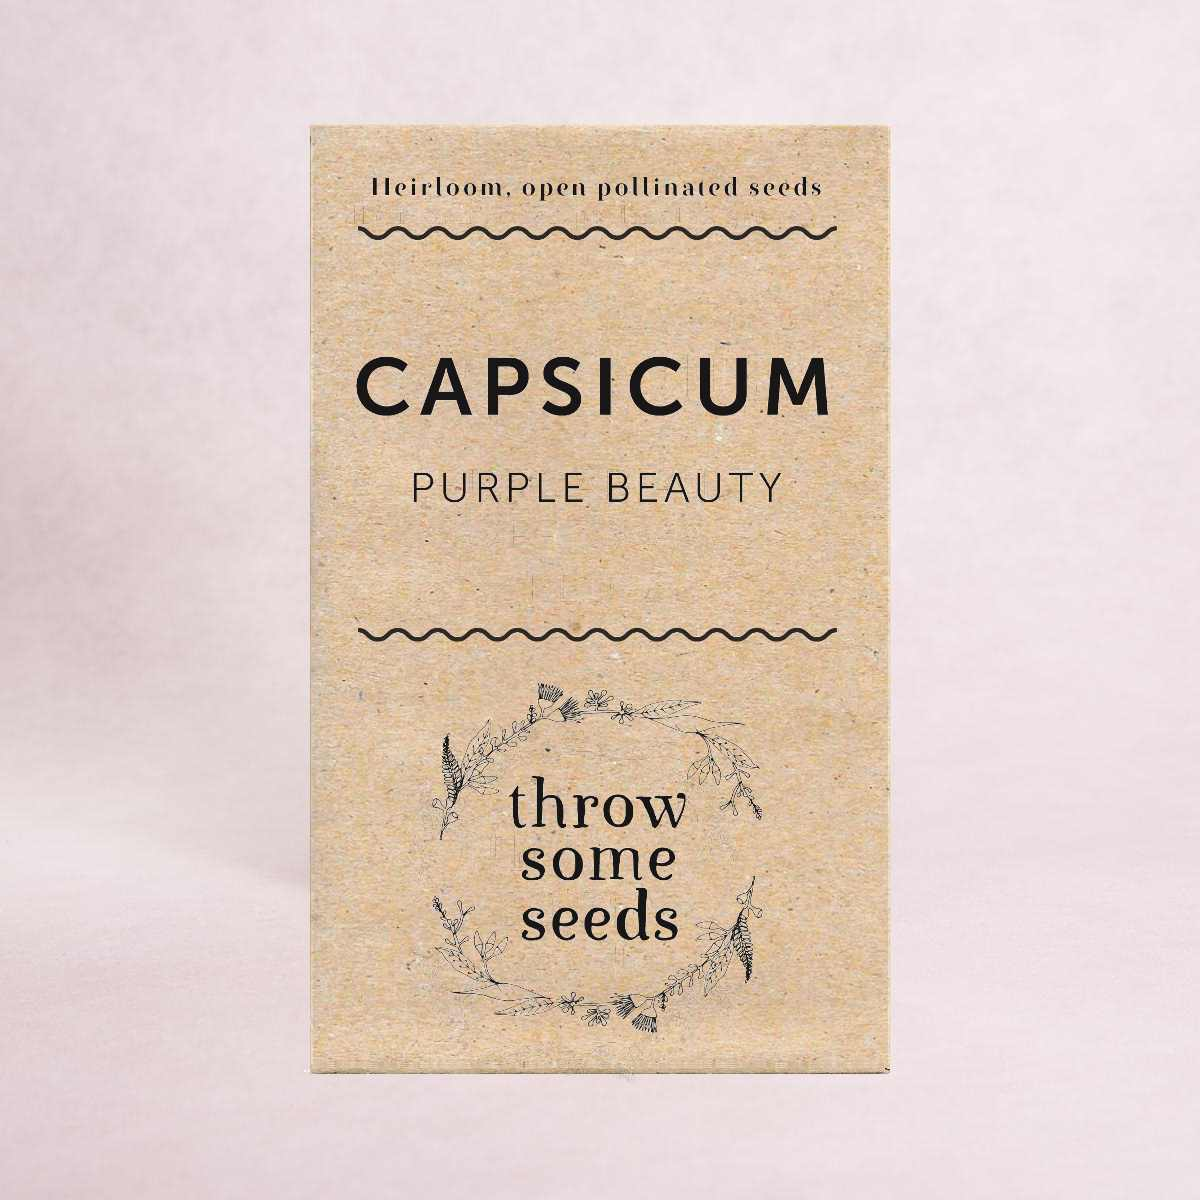 Capsicum (Purple Beauty) Seeds - Seeds - Throw Some Seeds - Australian gardening gifts and eco products online!